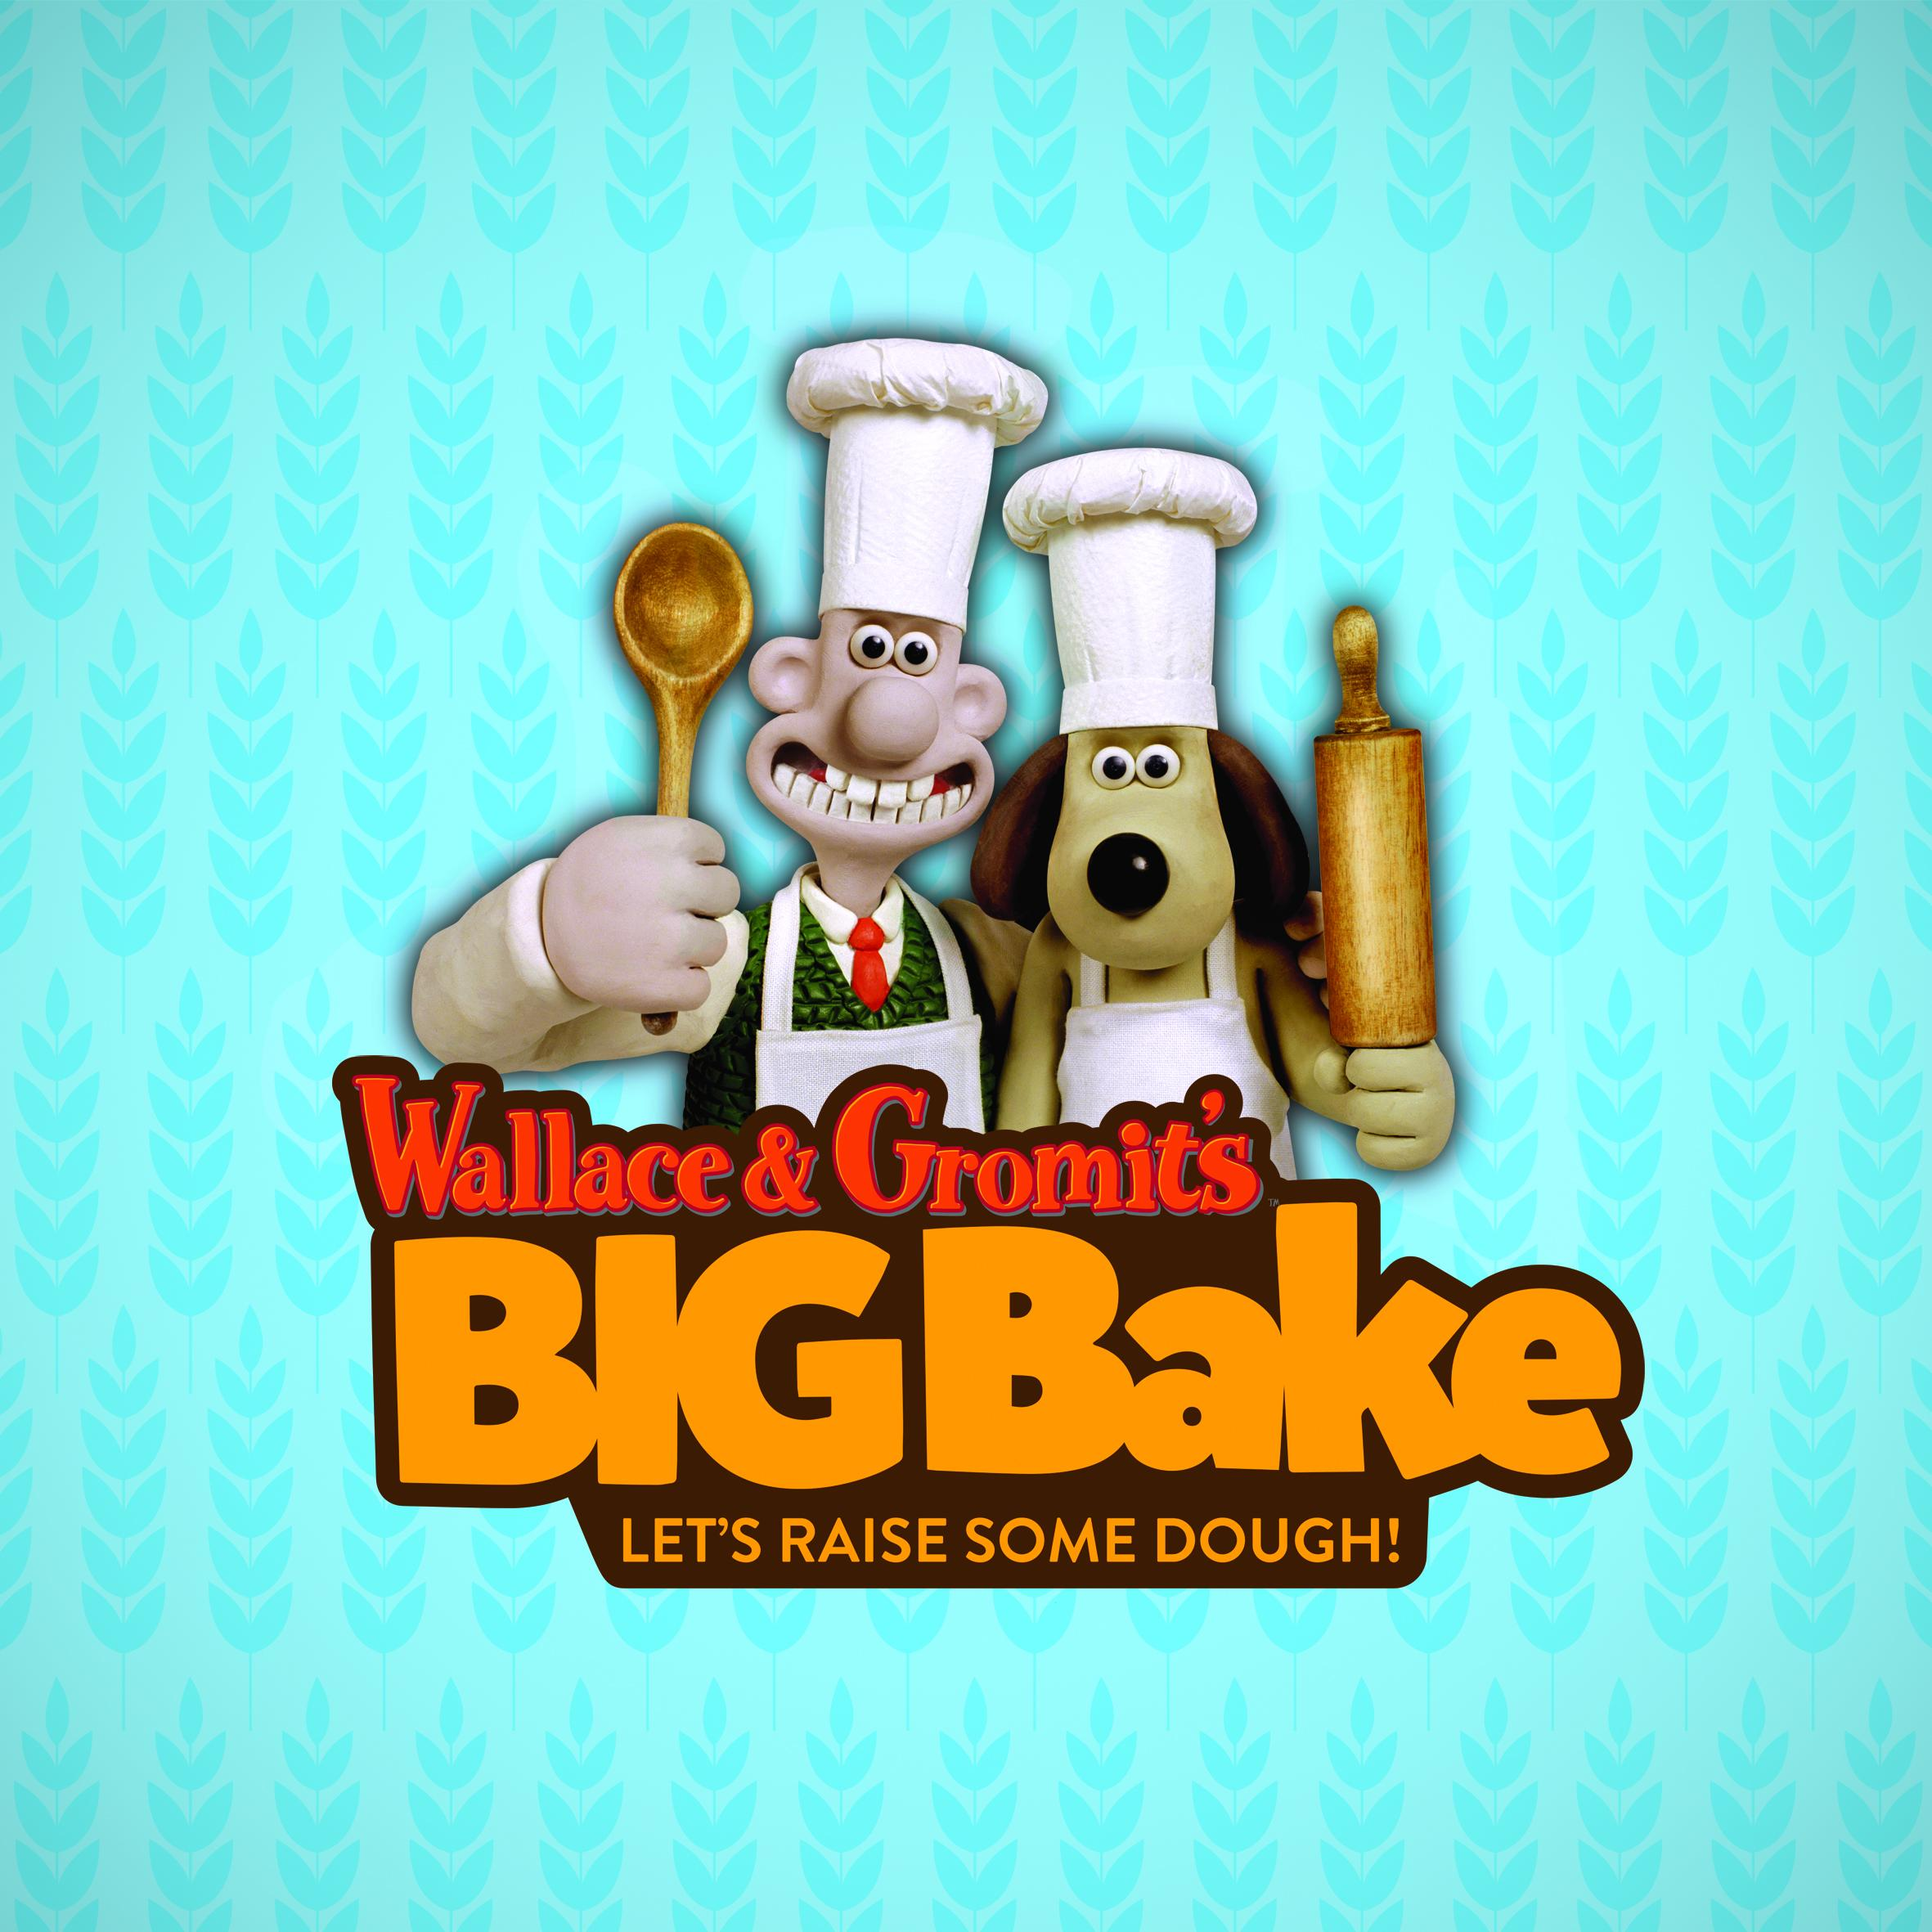 Wallace & Gromit's BIG Bake